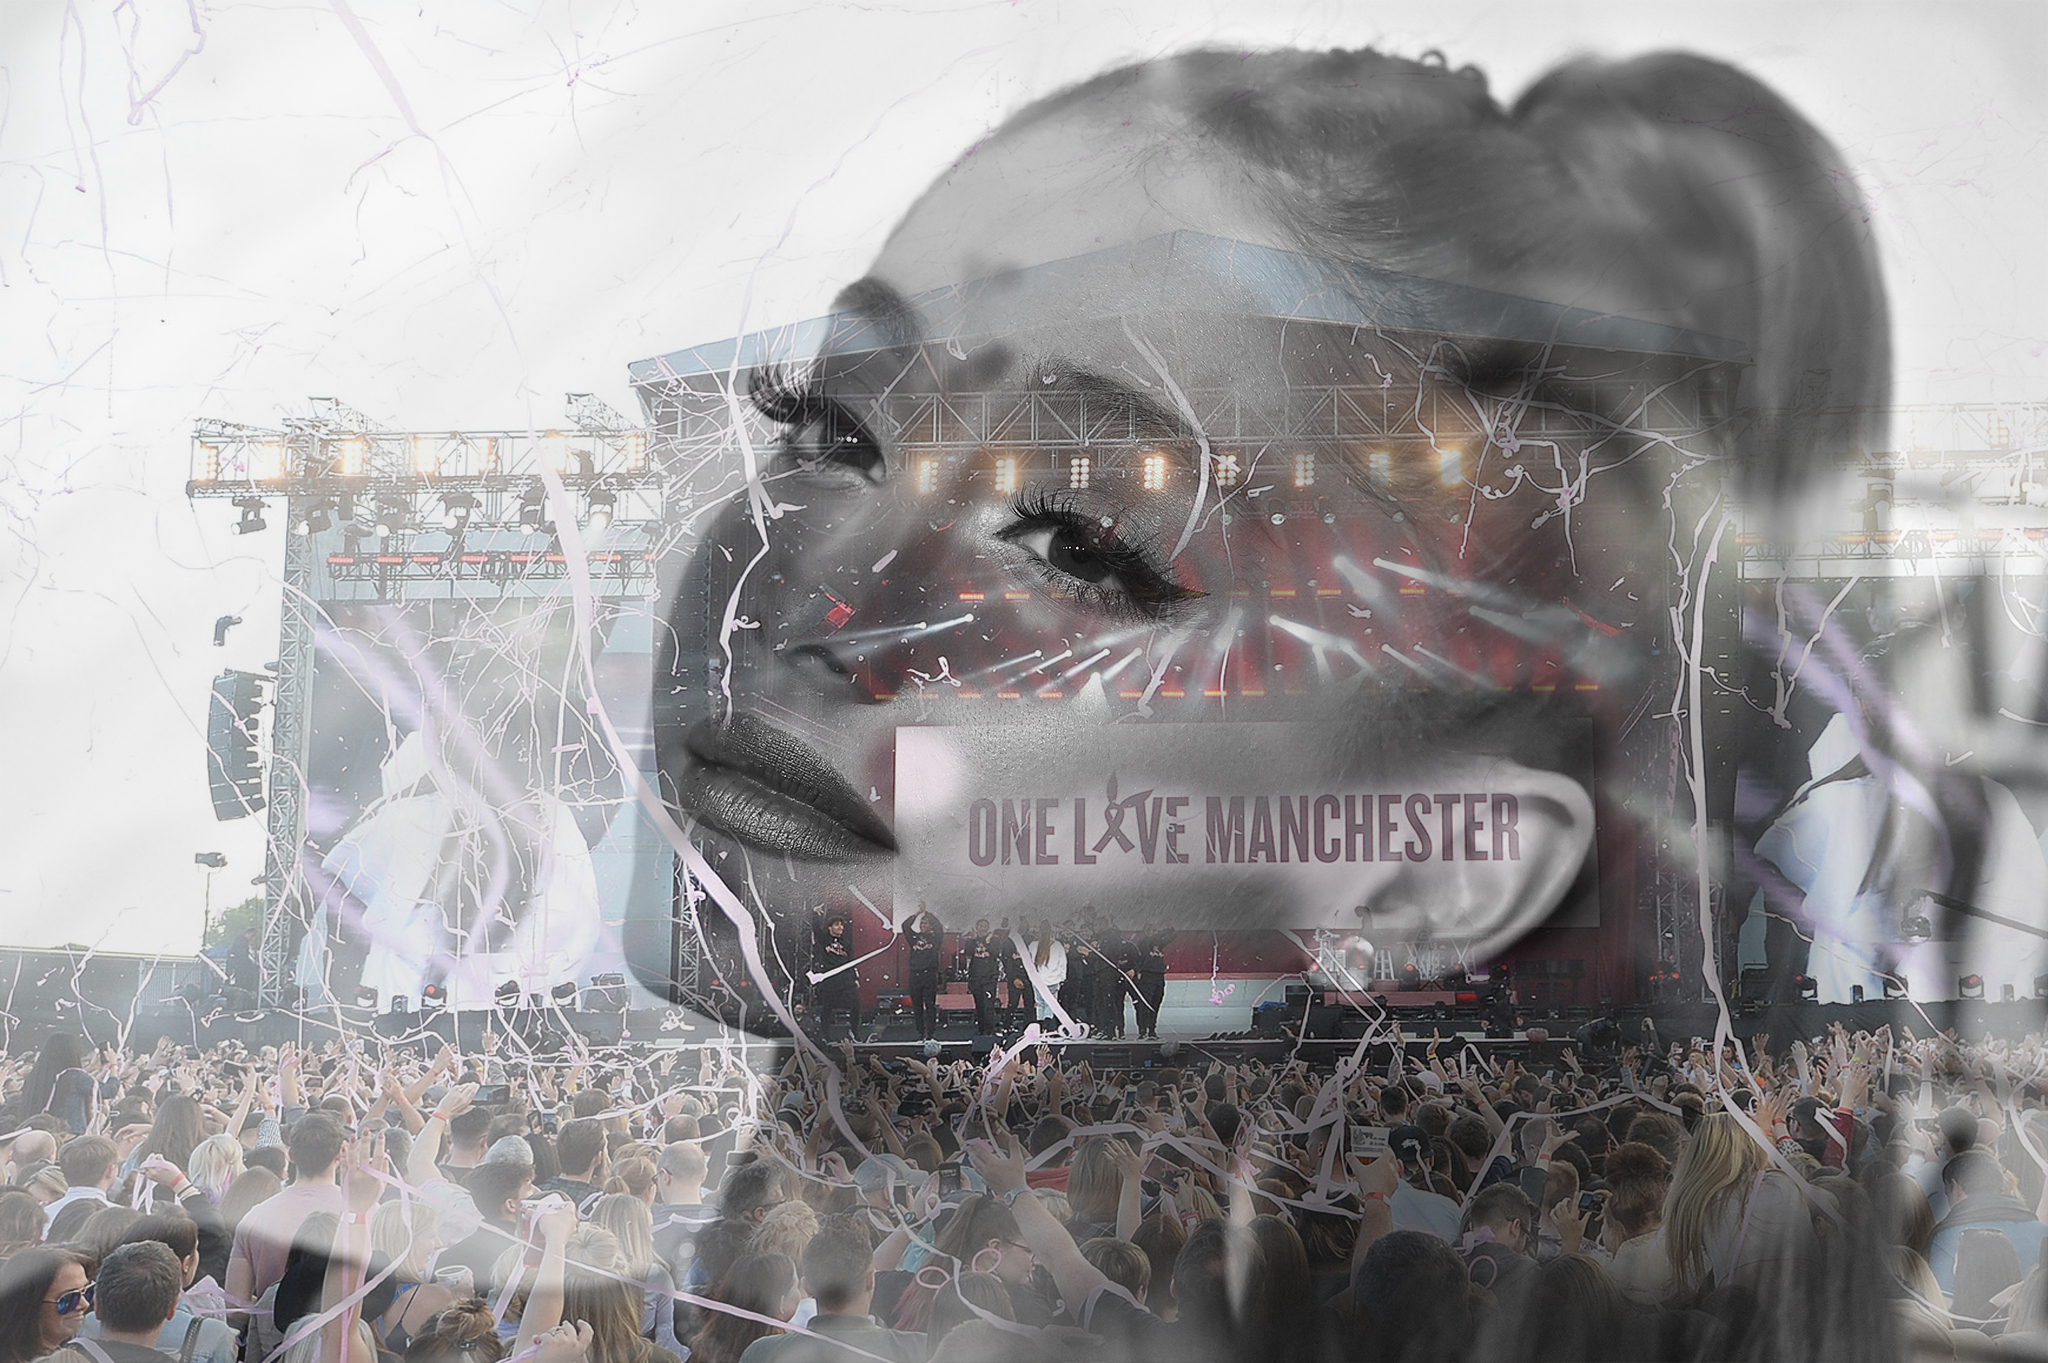 The image above is a composite of two photographs based on Ariana Grande's One Love Manchester concert. Following the Manchester Arena atrocity, the young singer encapsulated the resilience and strength of the city and community. I intended to overlay her face over the fundraising concert at the Old Trafford cricket ground.